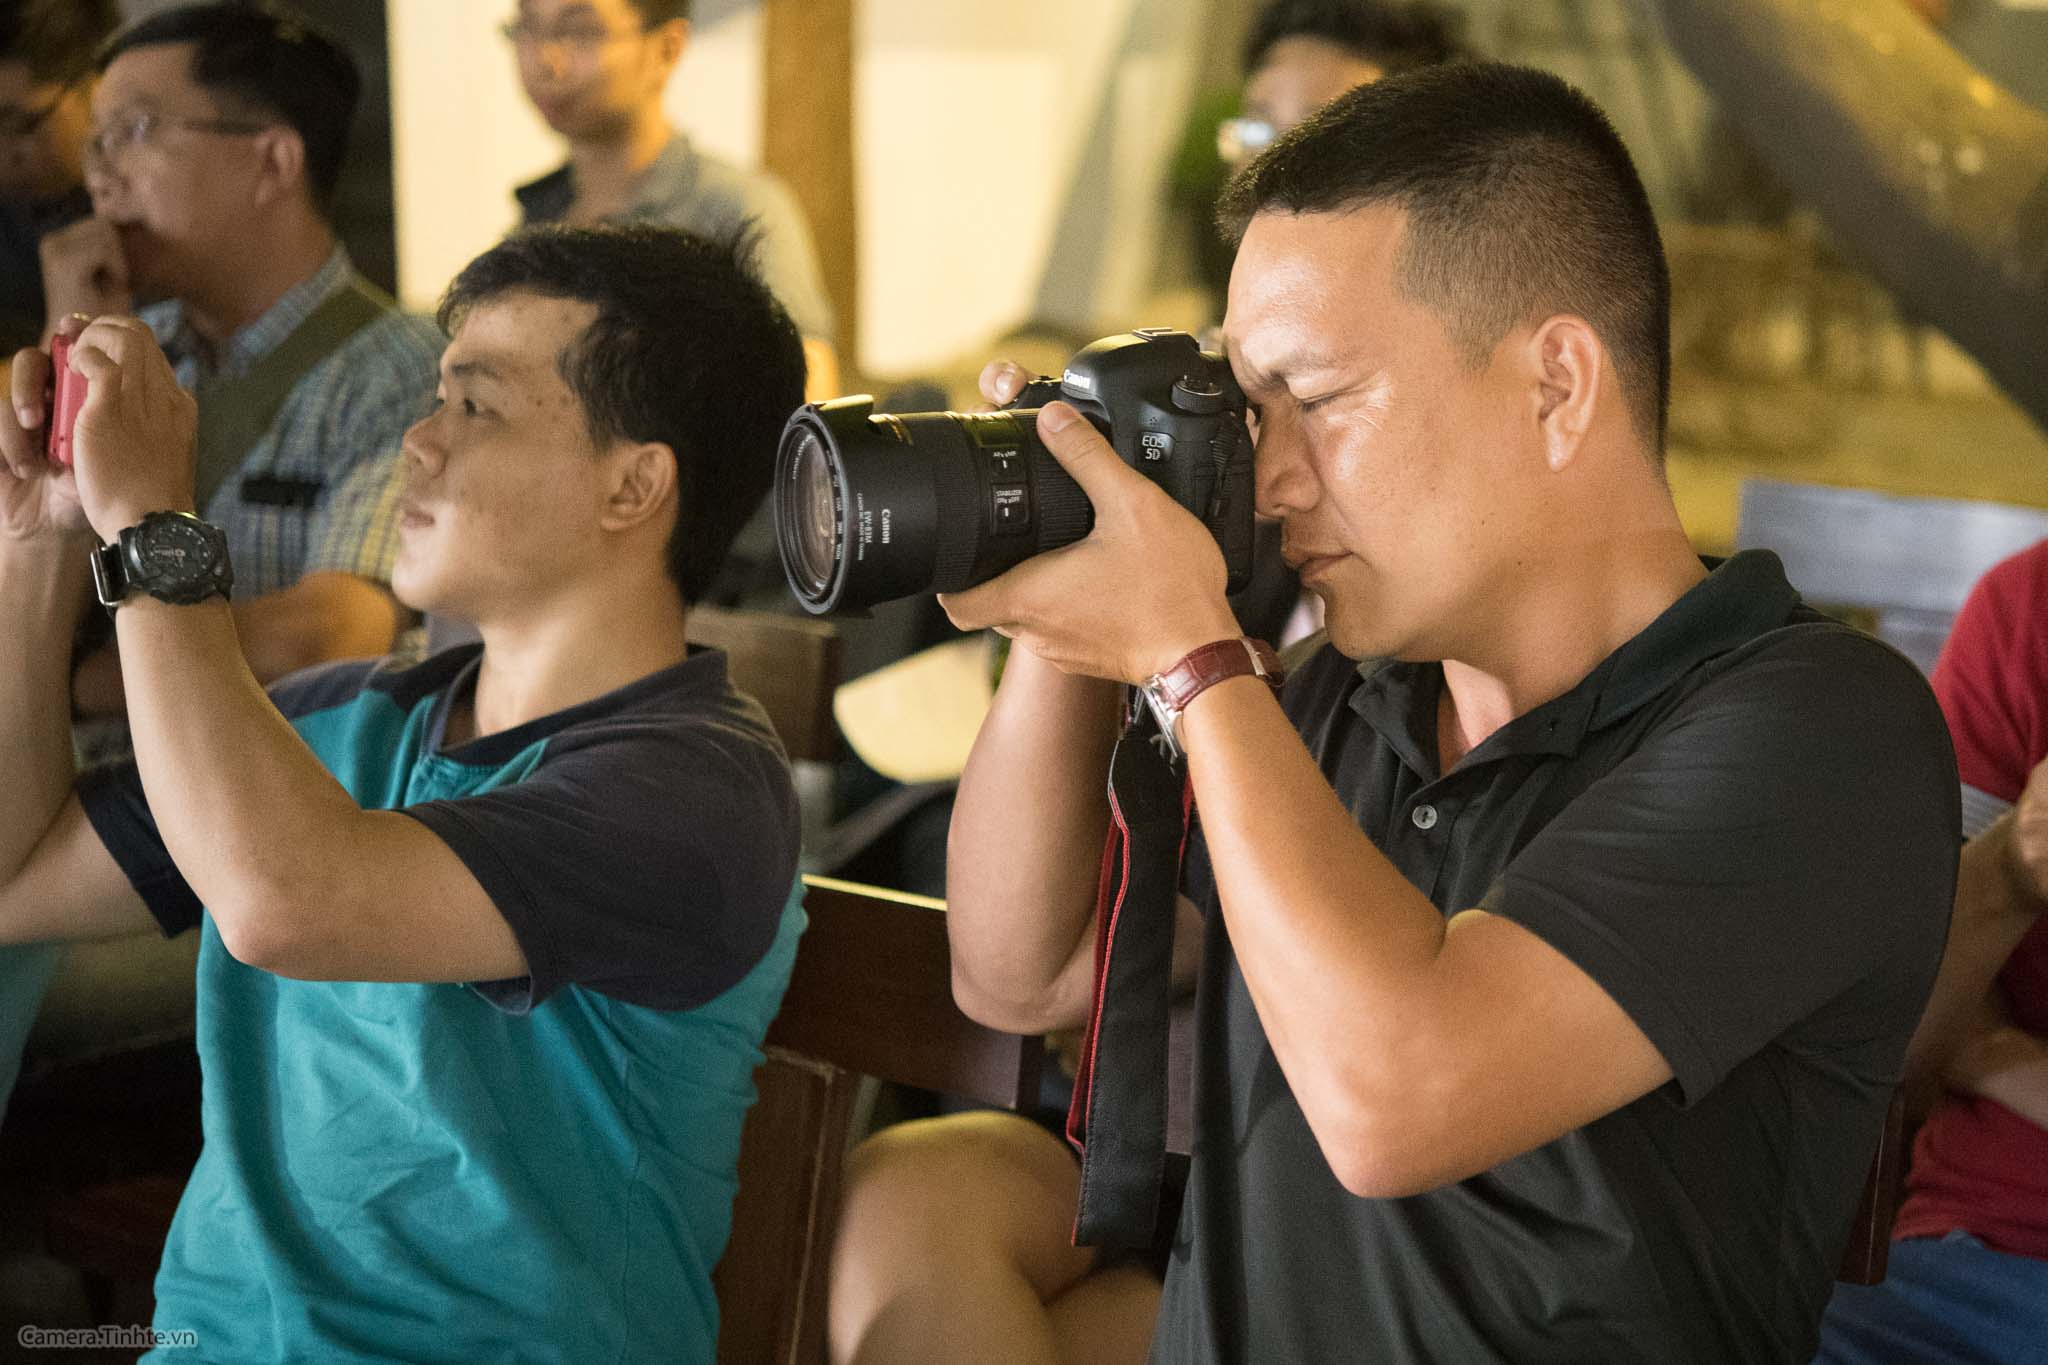 Workshop chup anh the thao - Camera.tinhte.vn-23.jpg